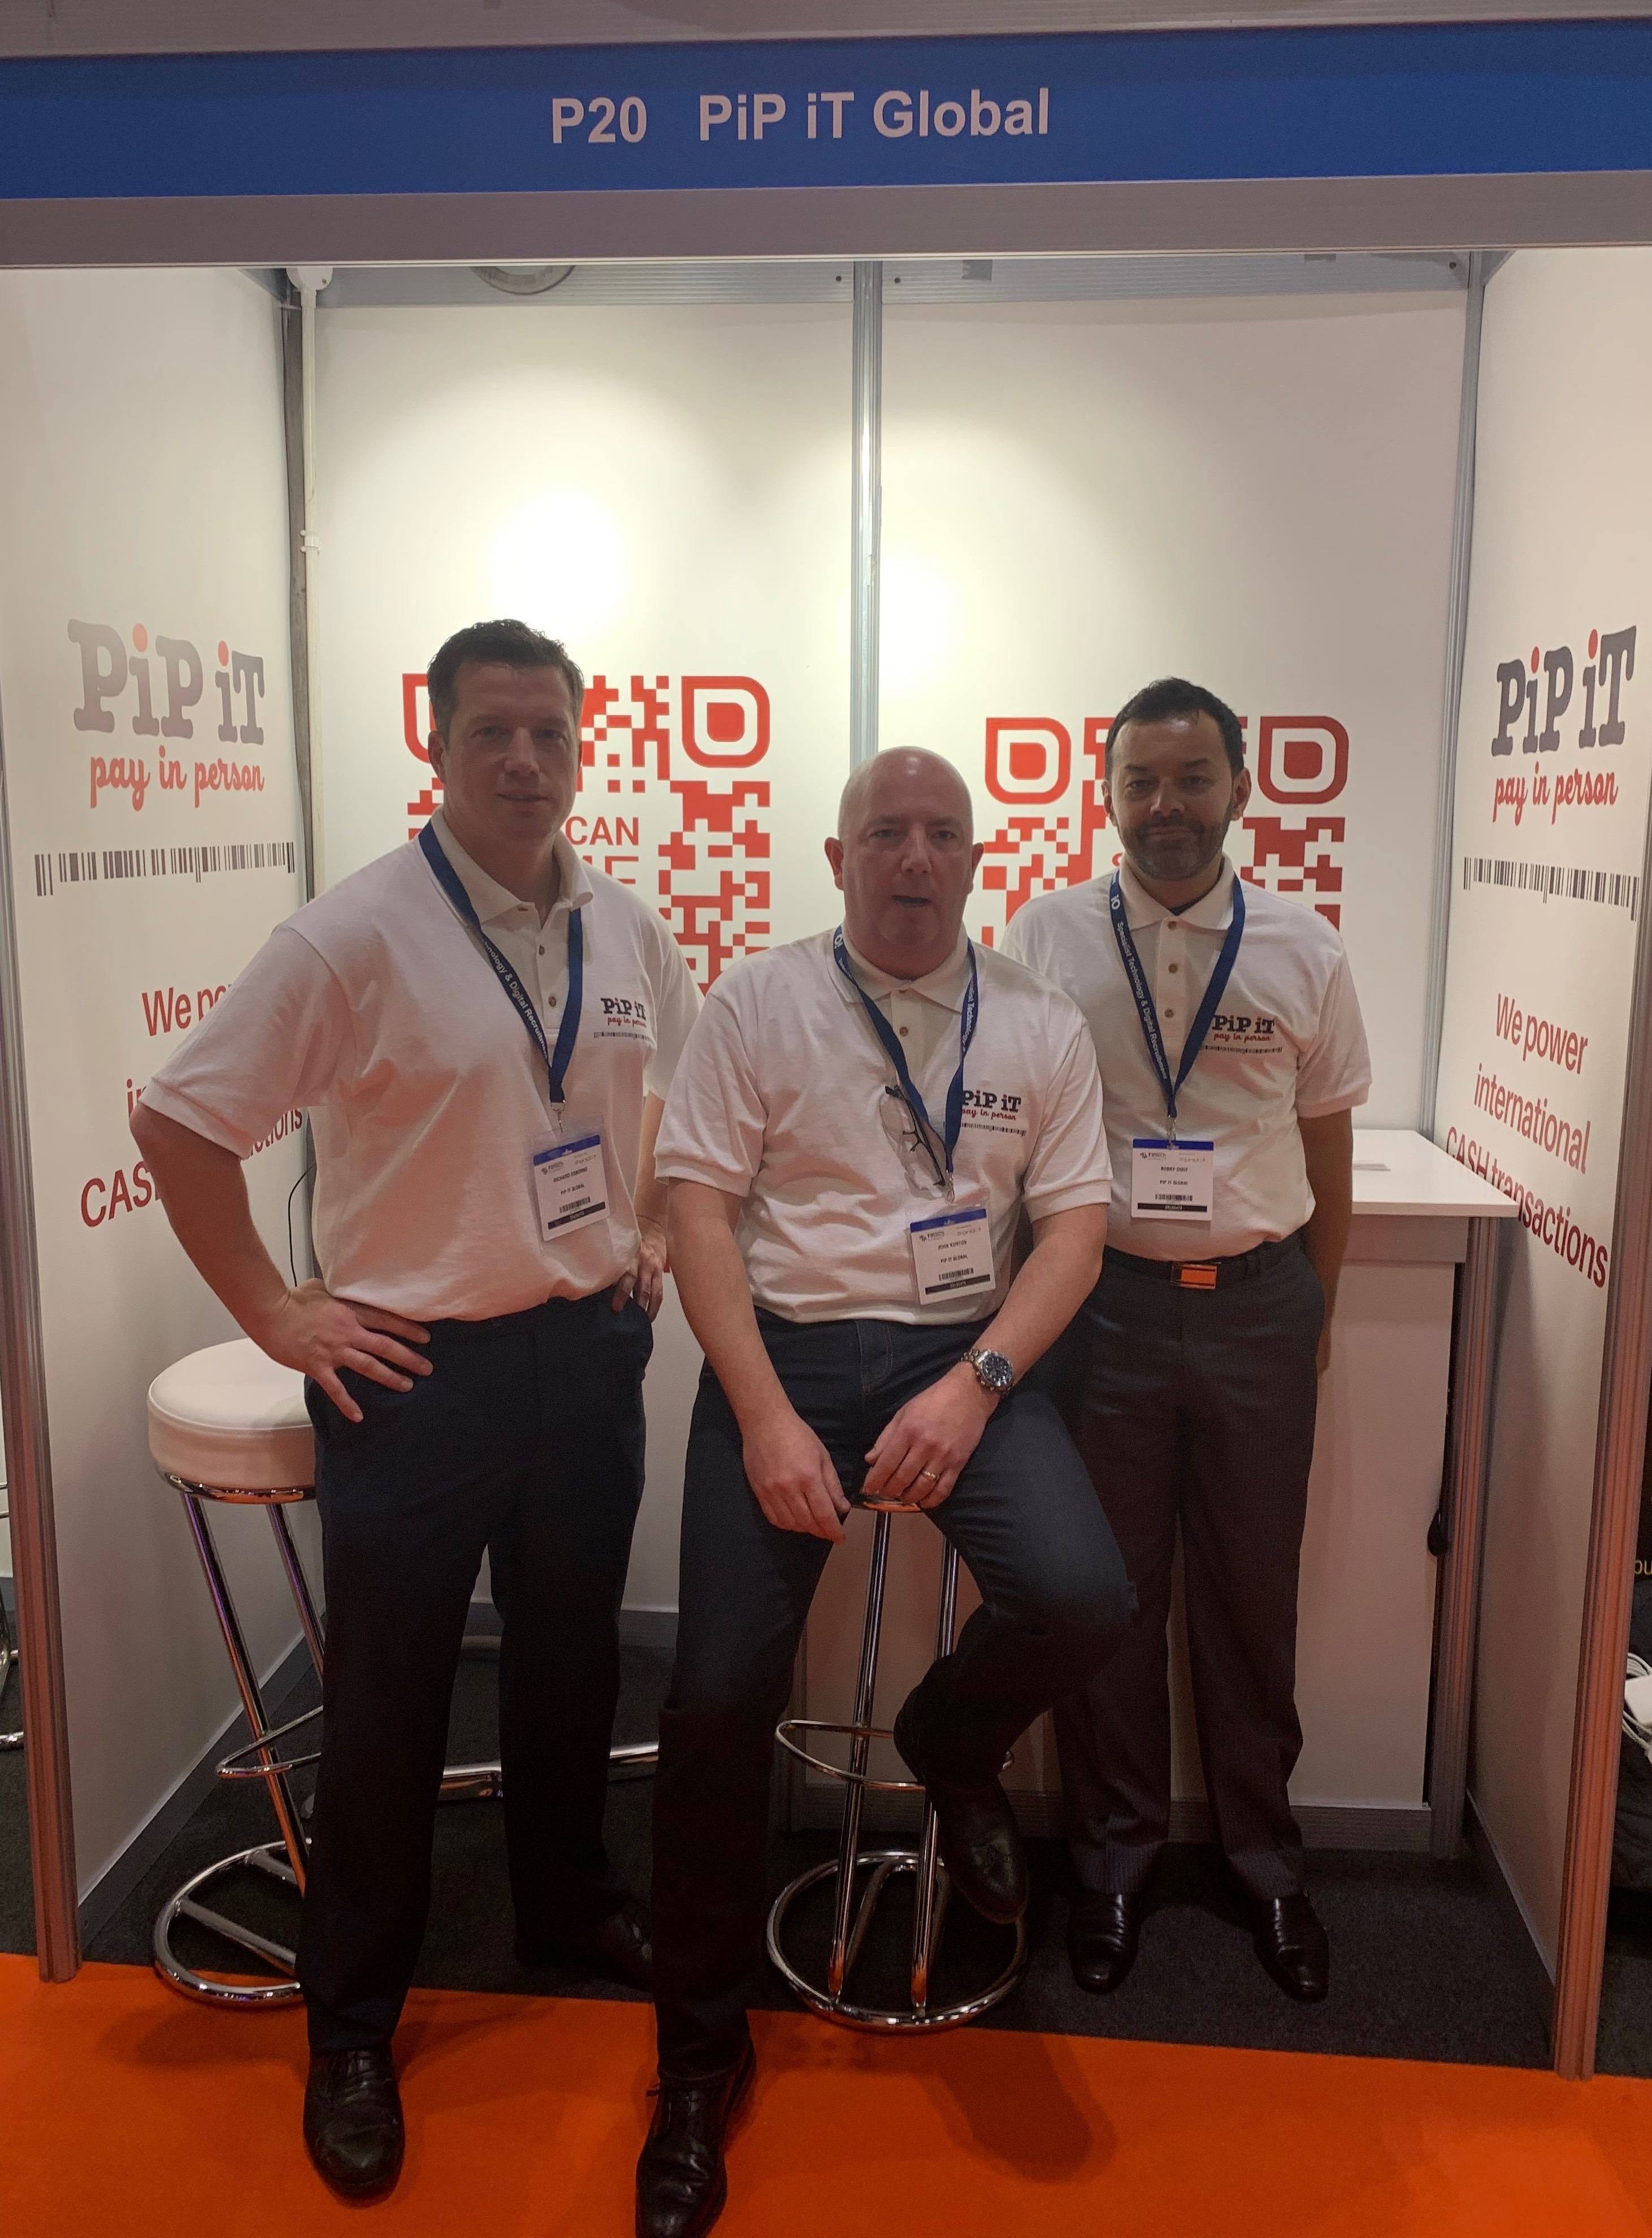 PiP iT Global - Pip IT Is Exhibiting At Fintech Connect – London - Richard, John and Bobby